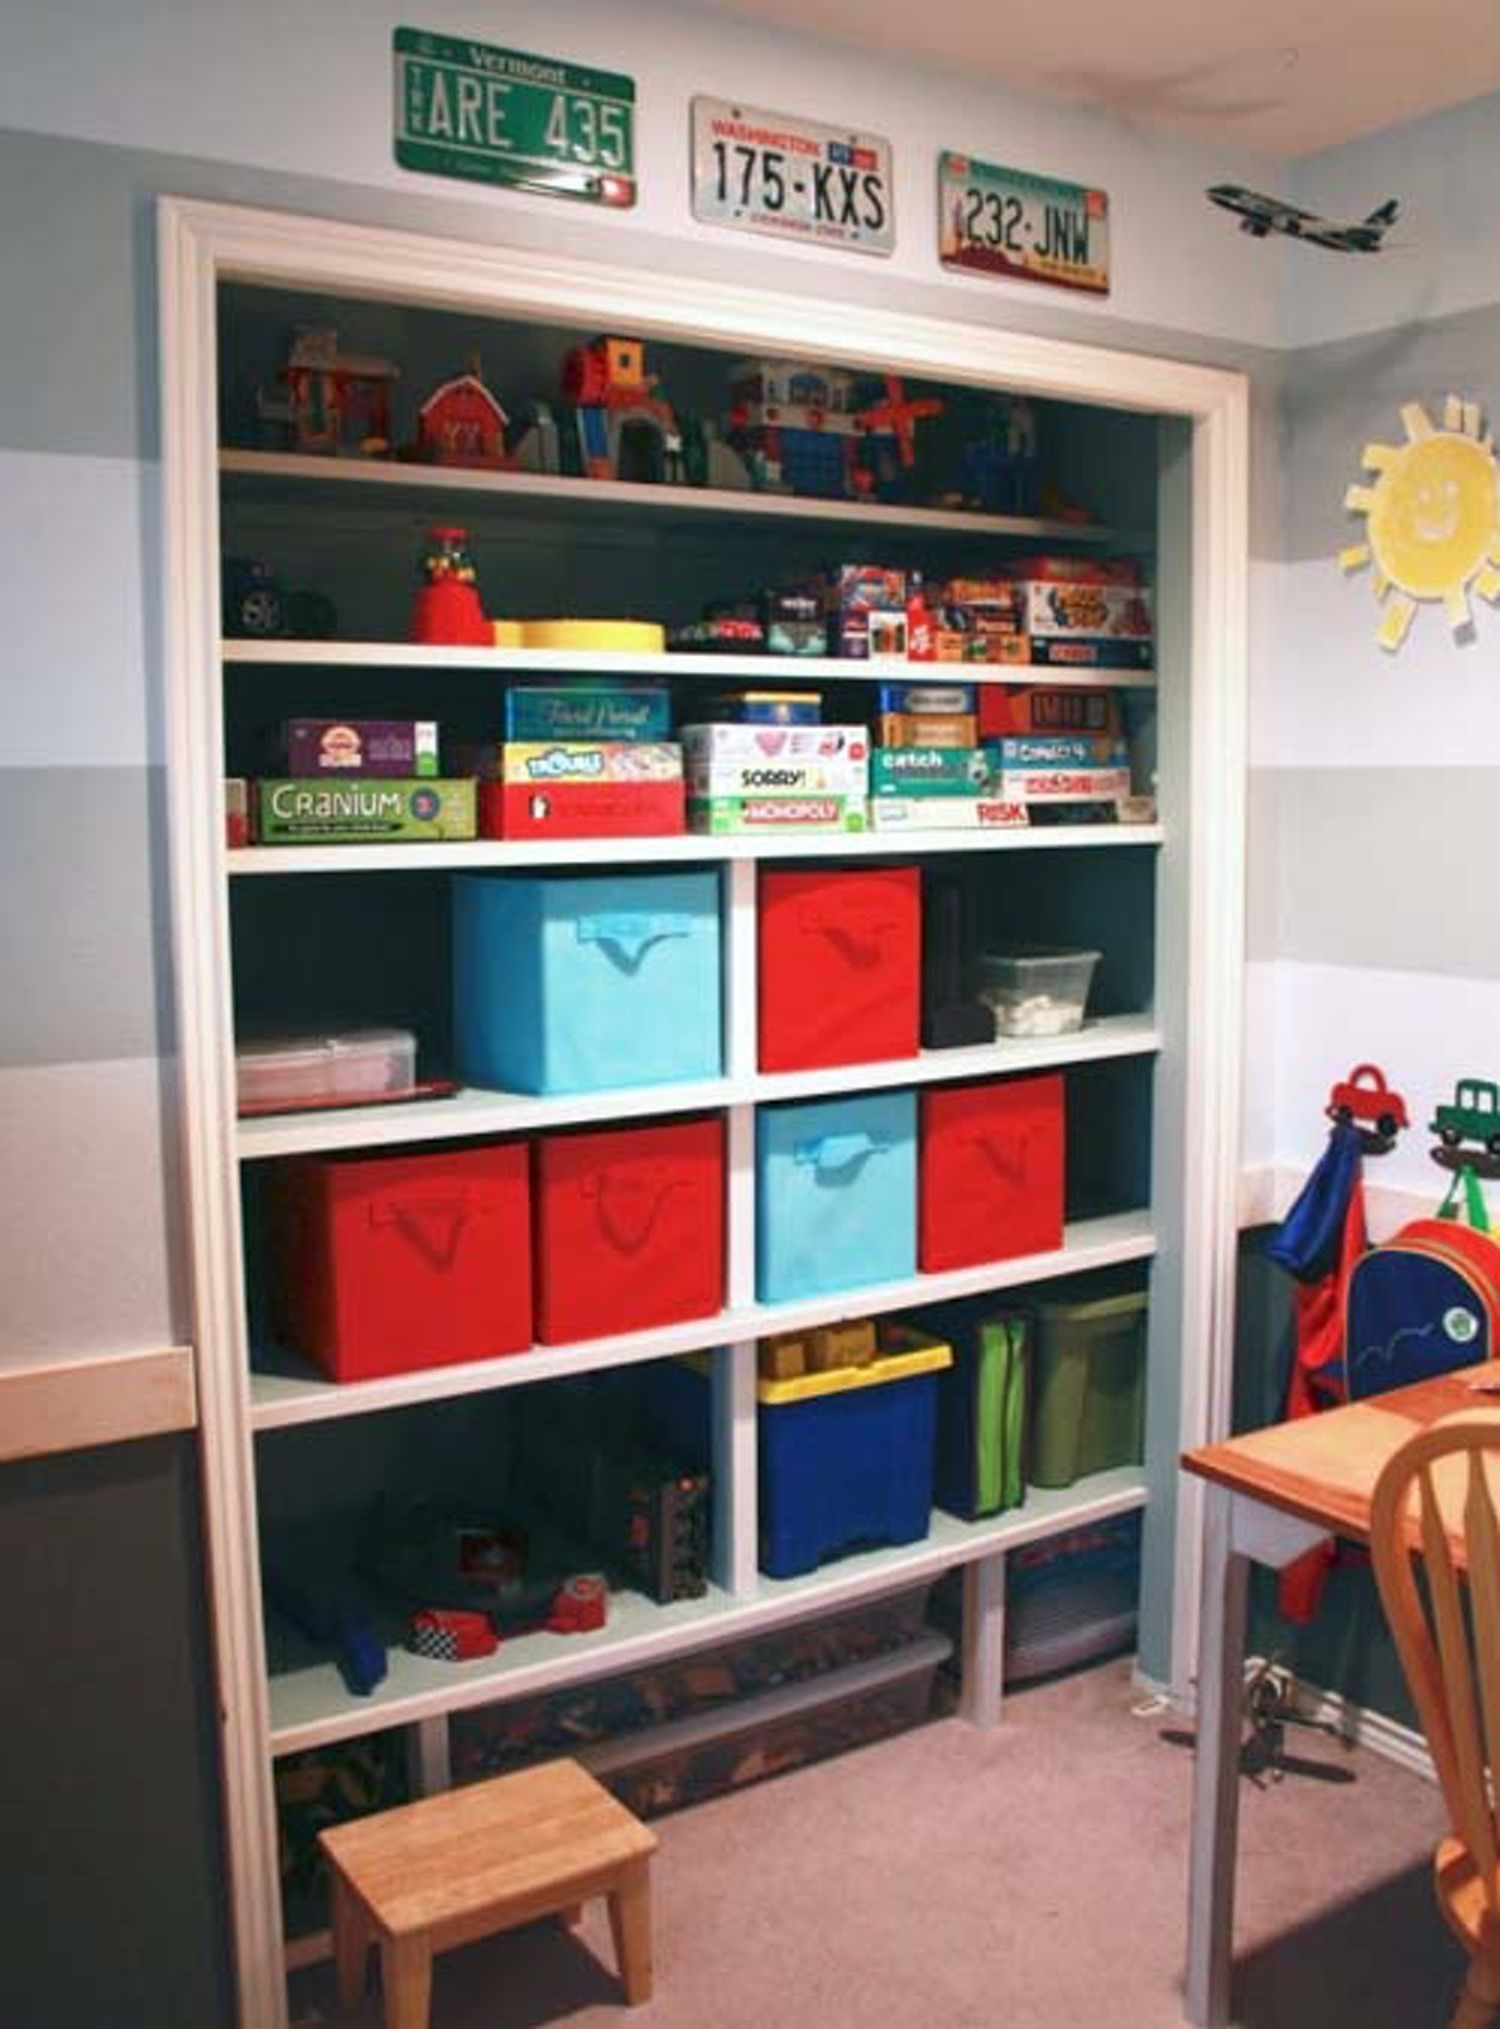 Turn Your Closet Into A Bookshelf Bedroom Organization Closet Storage Kids Room Kids Closet Organization